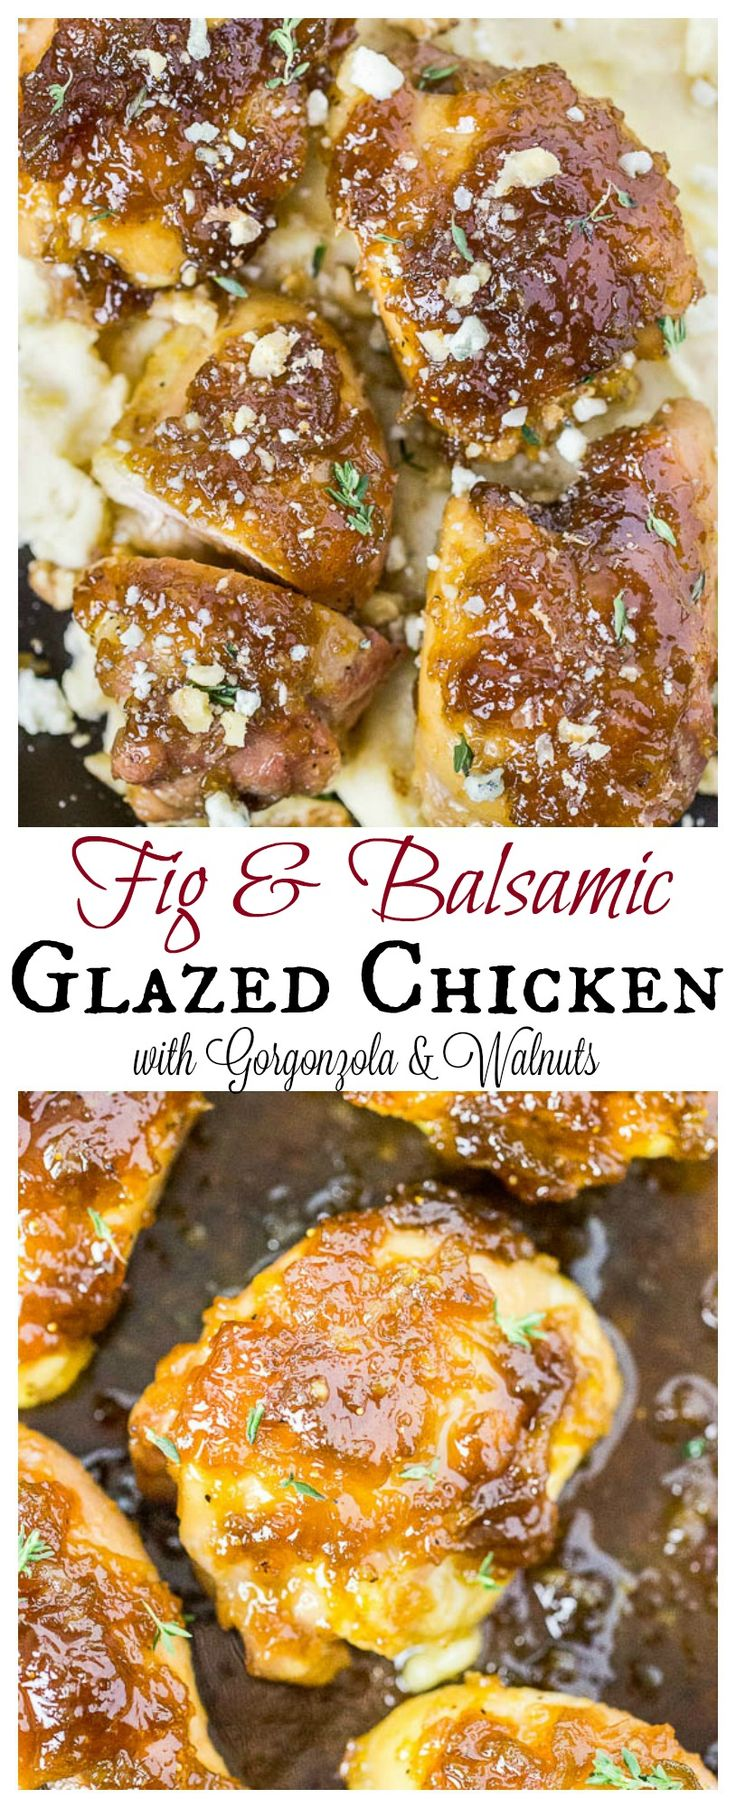 Fig & Balsamic Glazed Chicken Thighs with Gorgonzola, Thyme & Walnuts.